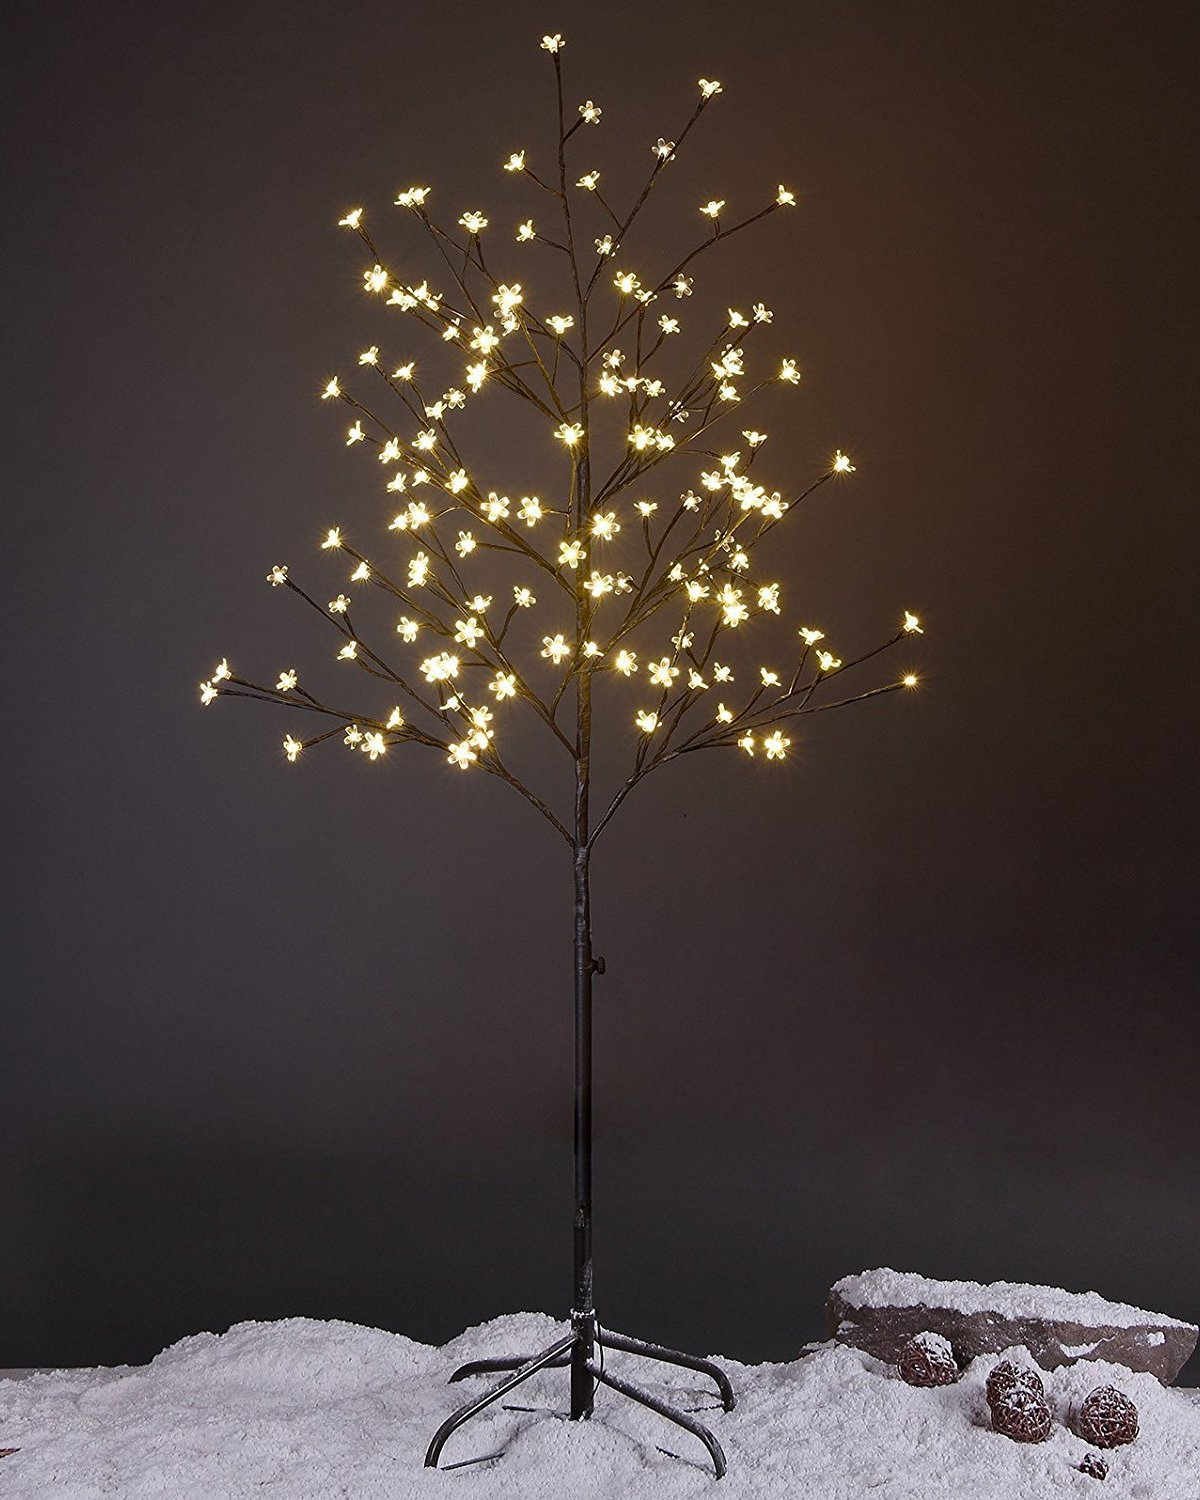 Lightshare LED Blossom Tree, 5 Feet, Warm White Light, Brown Finish, Perfect for Home Decoration, Wedding, Party J-XTHS5FT-WW